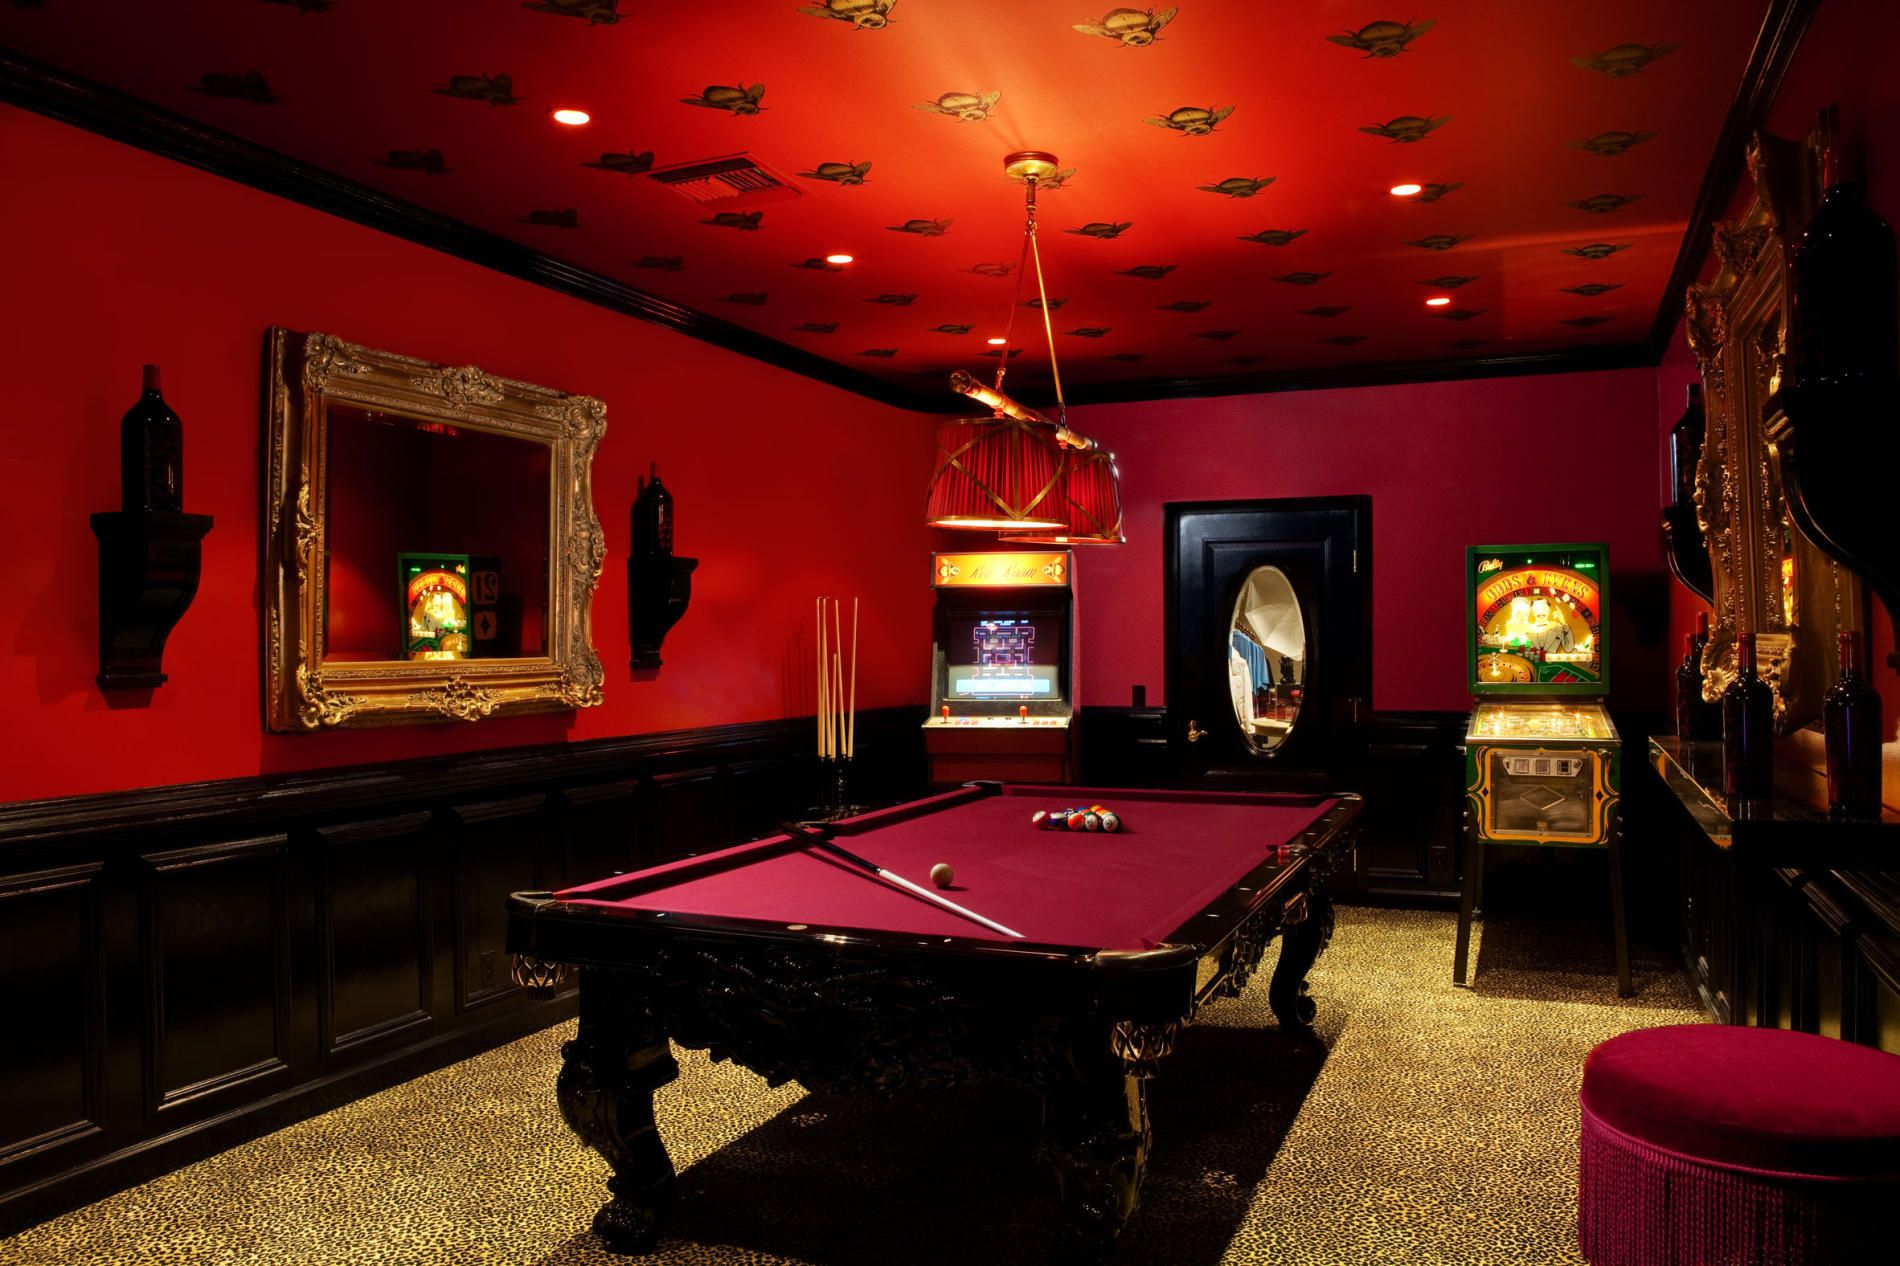 Man Cave Kristan Green : Pin by dániel majzik on game pinterest rooms men cave and room